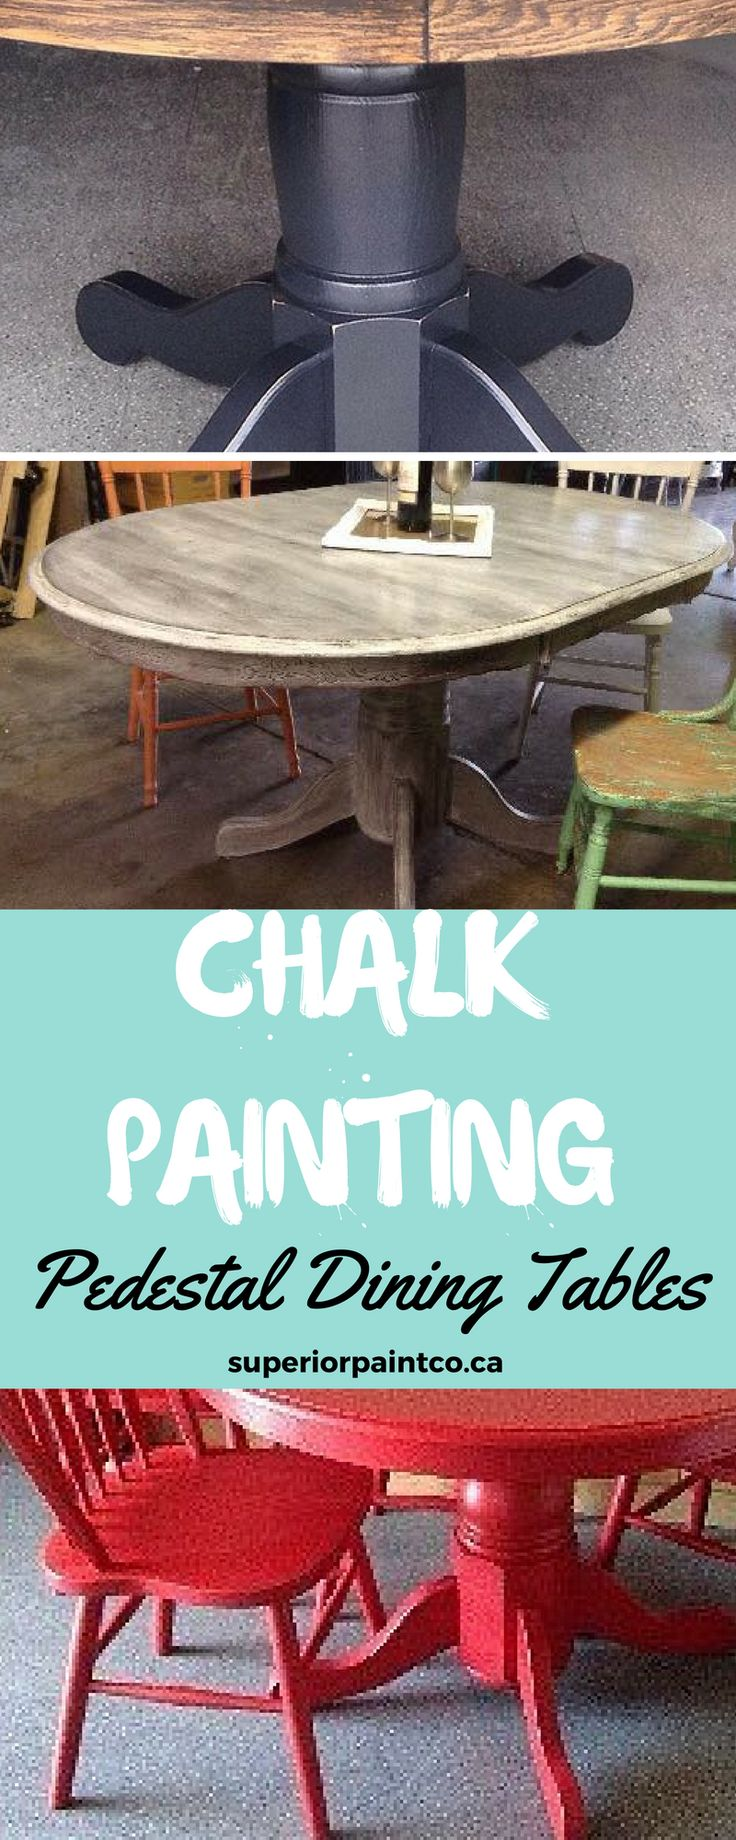 Chalk painted pedestal dining tables